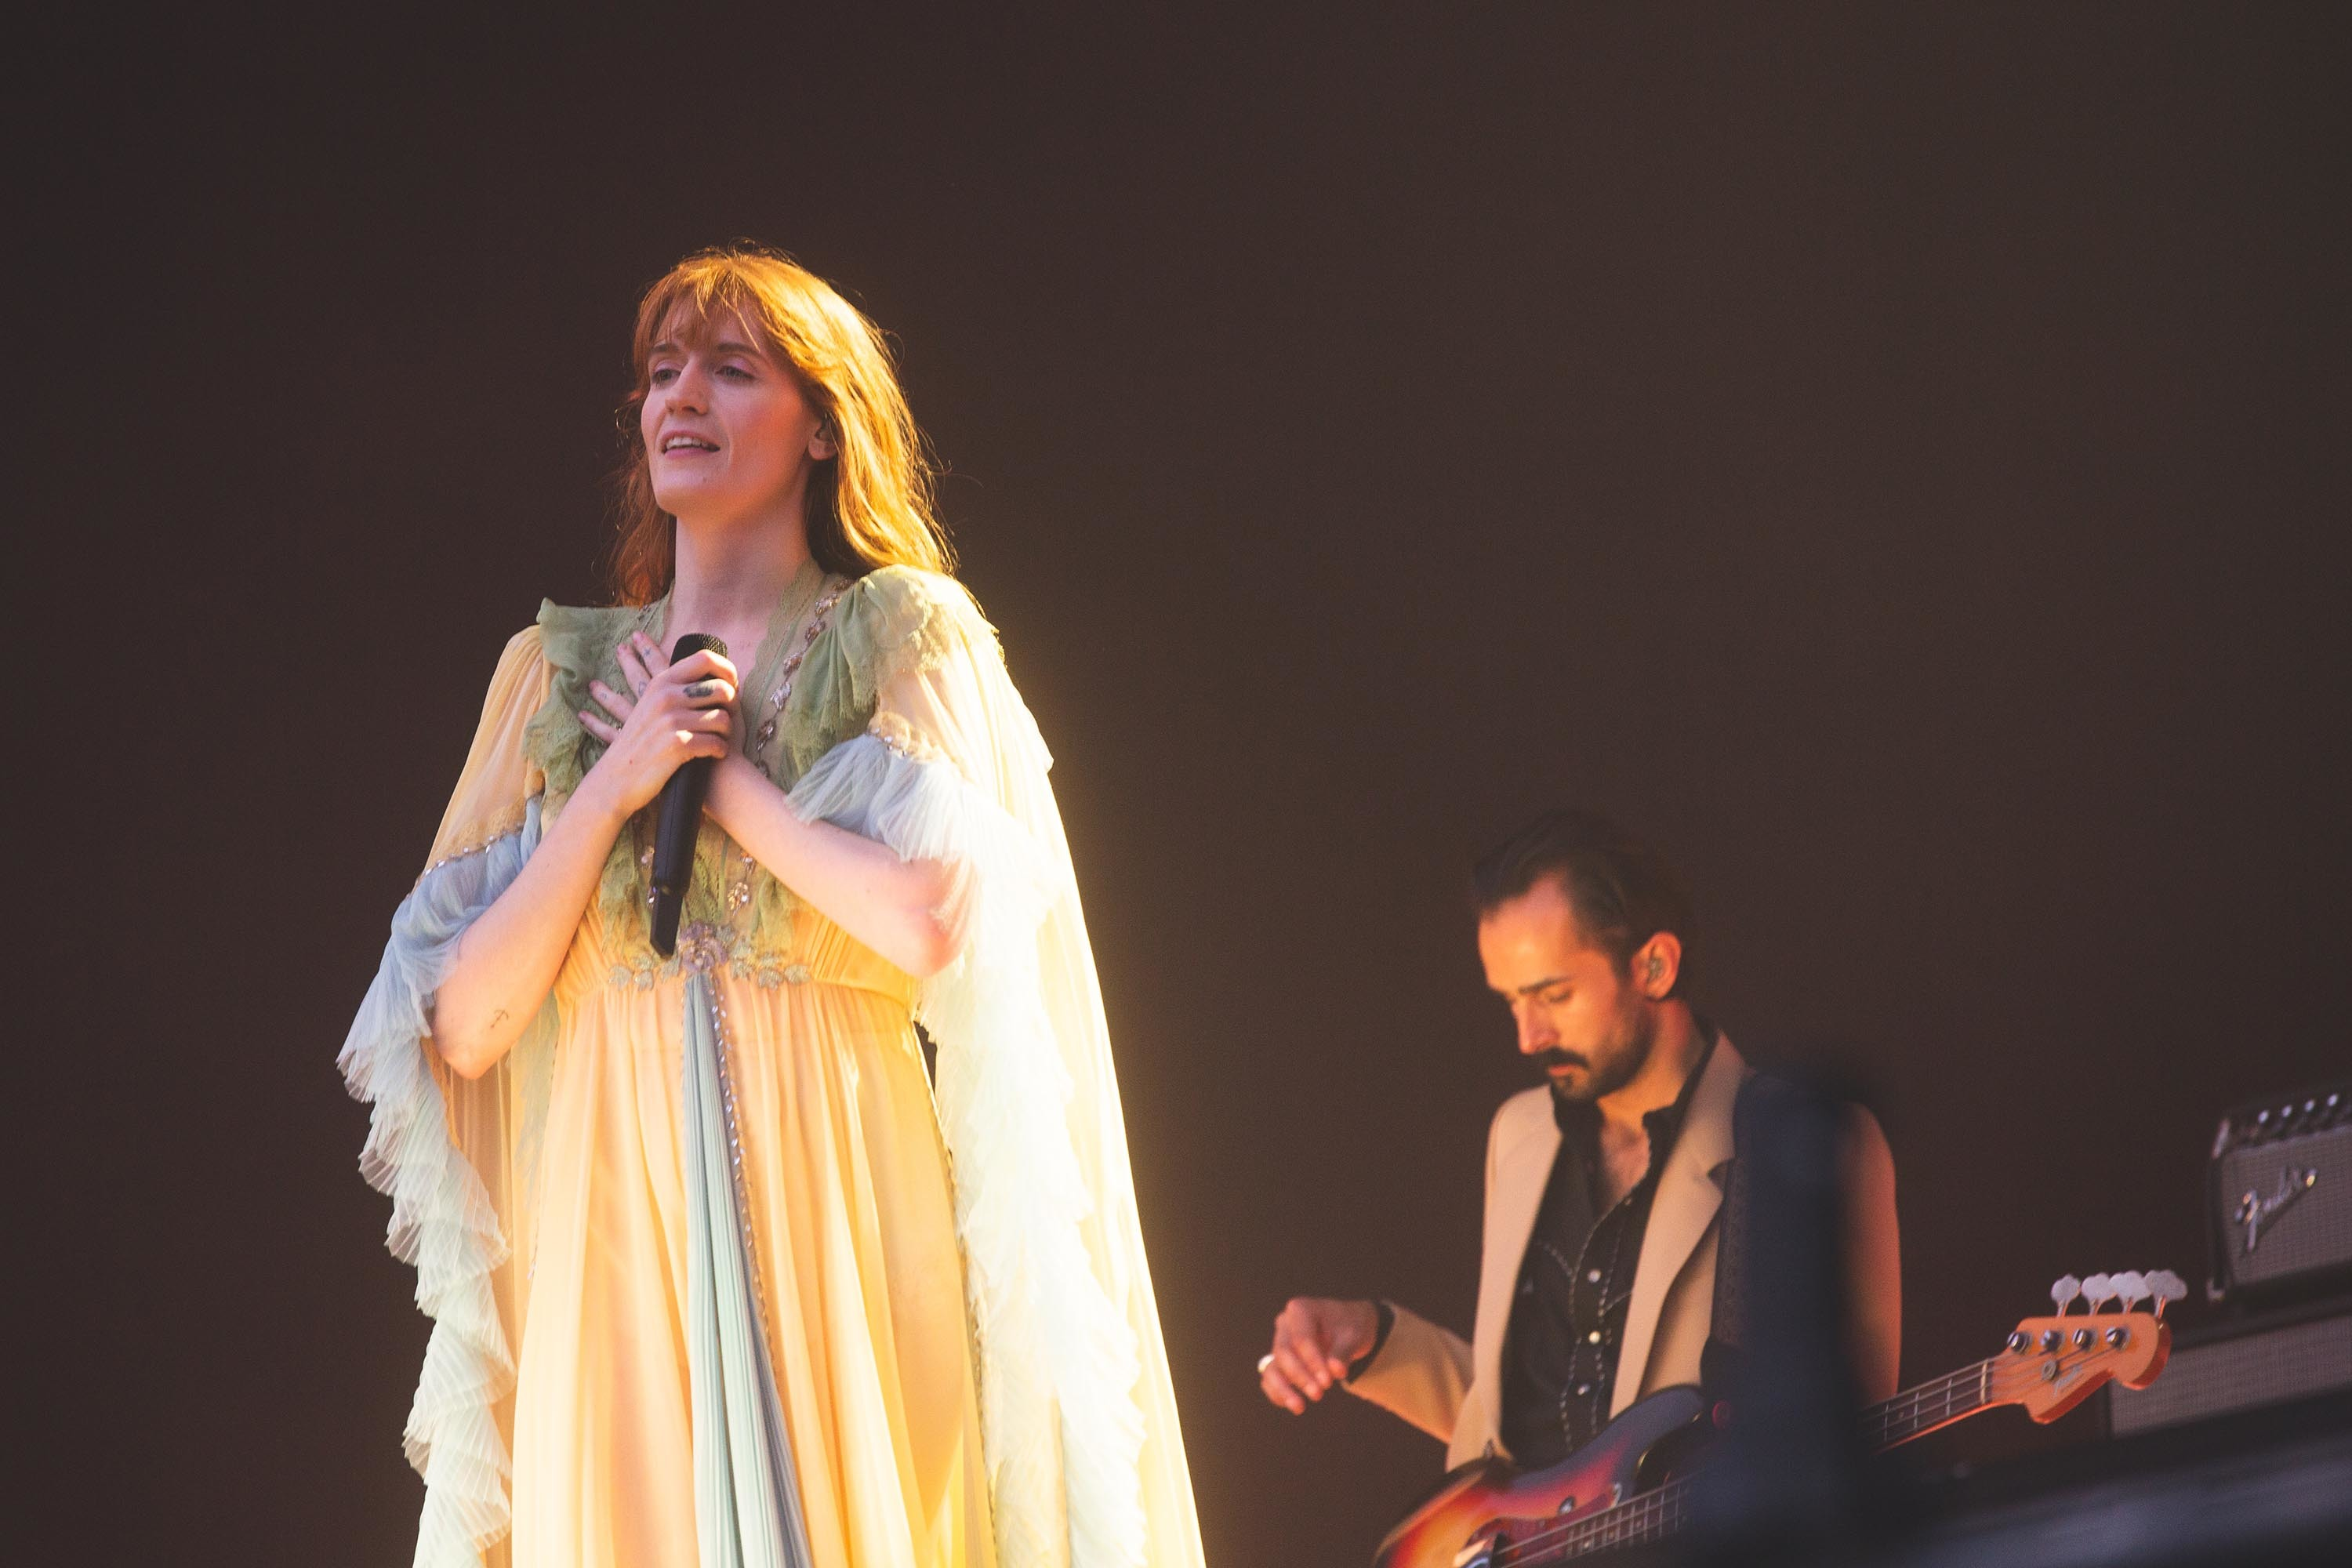 Florence + The Machine releases soothing new song 'Light Of Love'